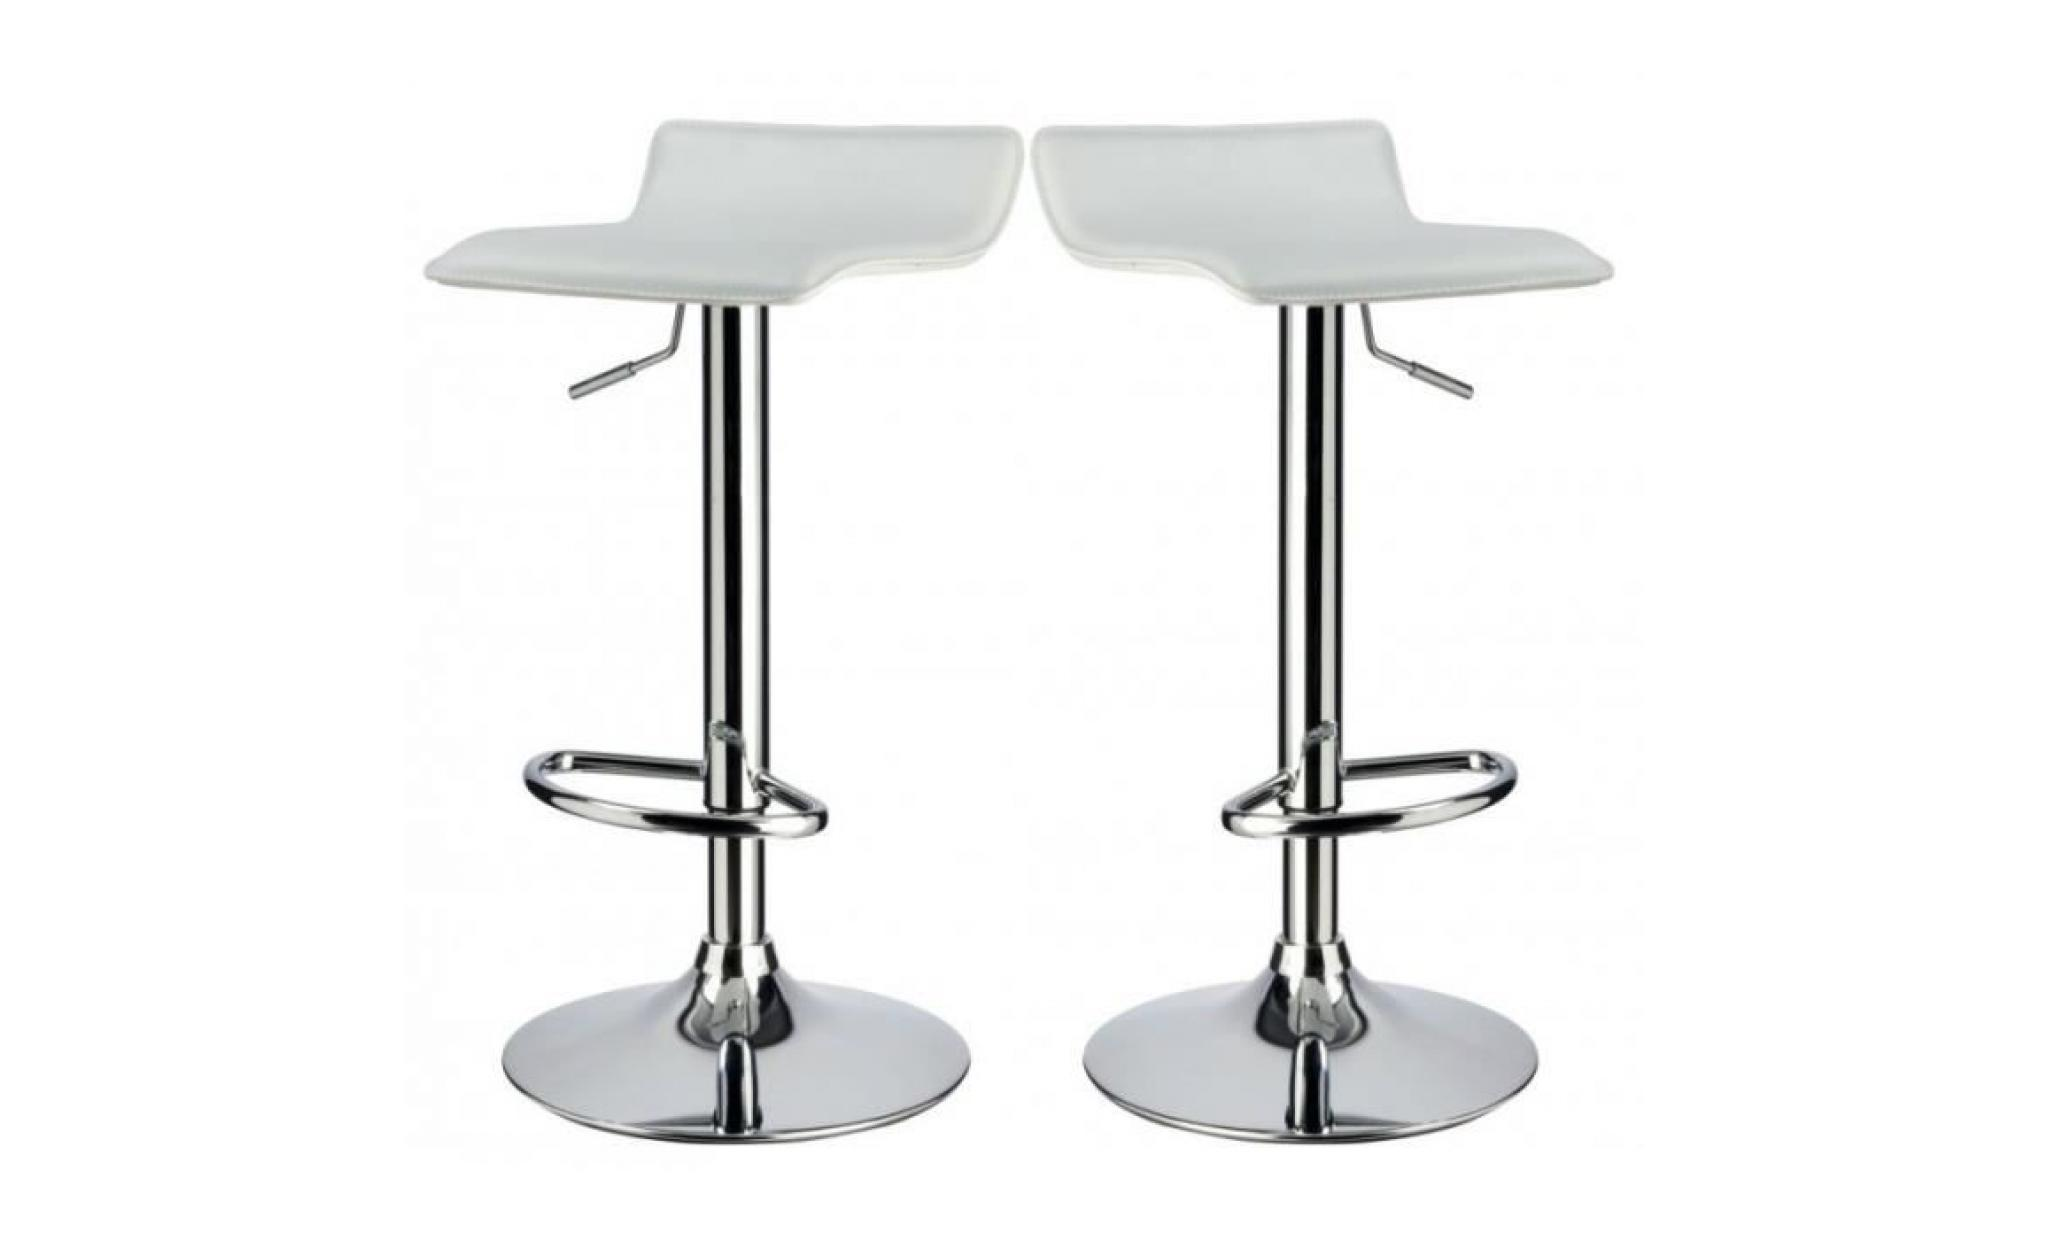 Lot De 2 Tabourets De Bar Blanc Lot De 2 Tabourets De Bar Cuir Synthétique Blanc Hauteur Réglable Tdb09006